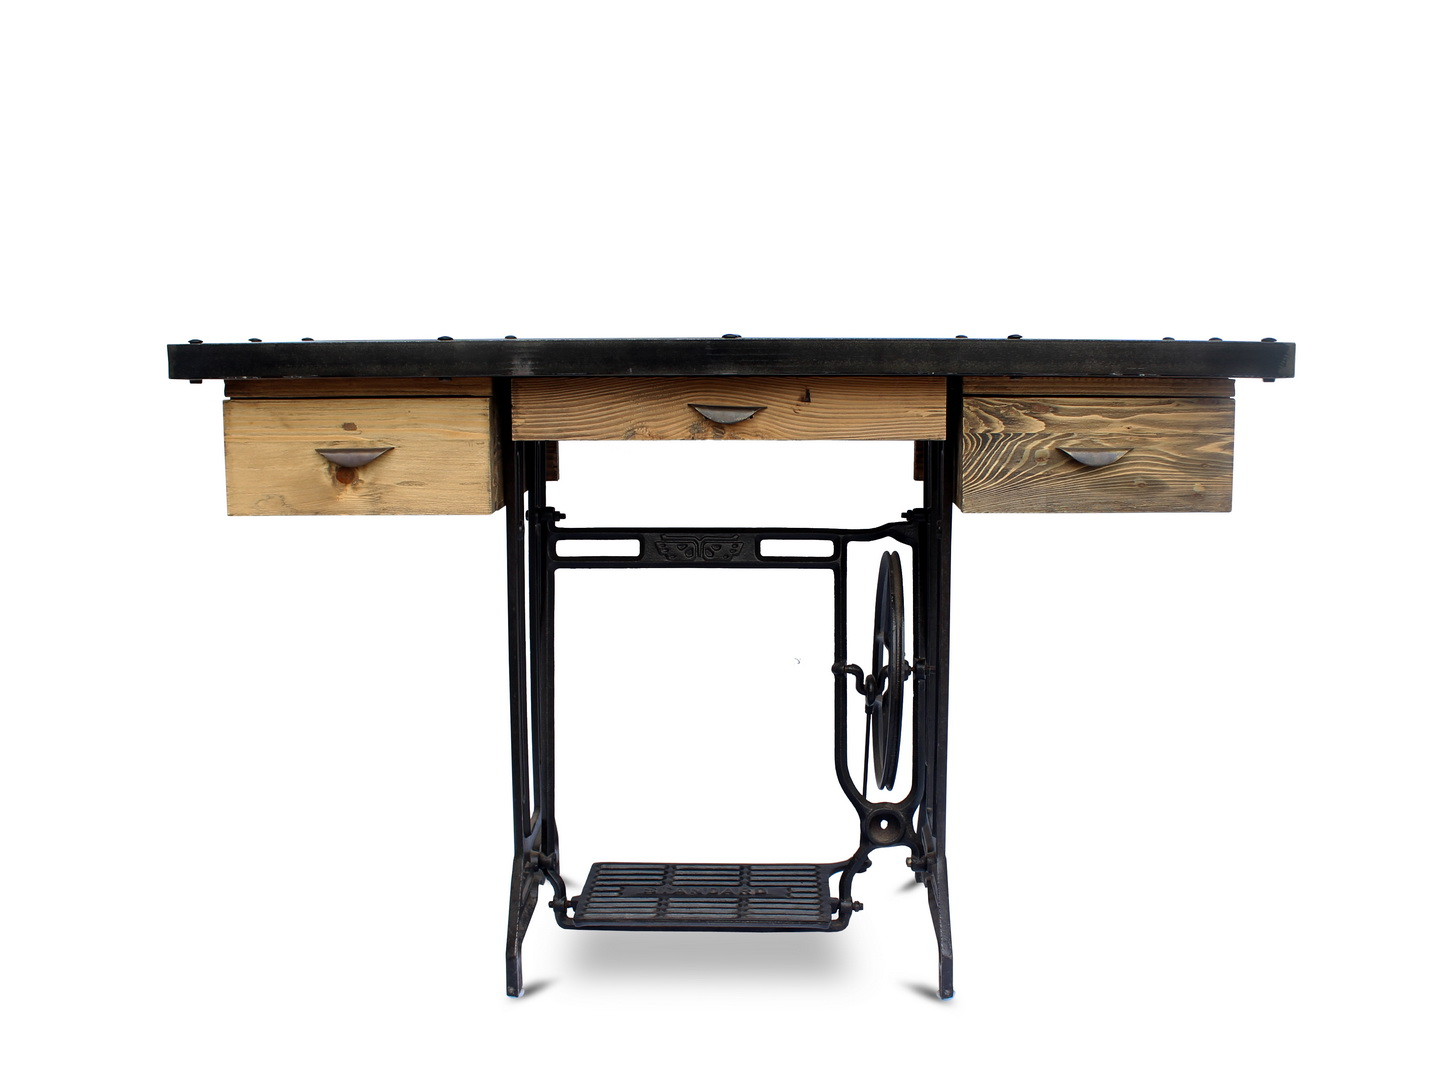 sewing_02_console_table_yuni_bali_furniture_manufacturer_exporter_bali_furniture_shop